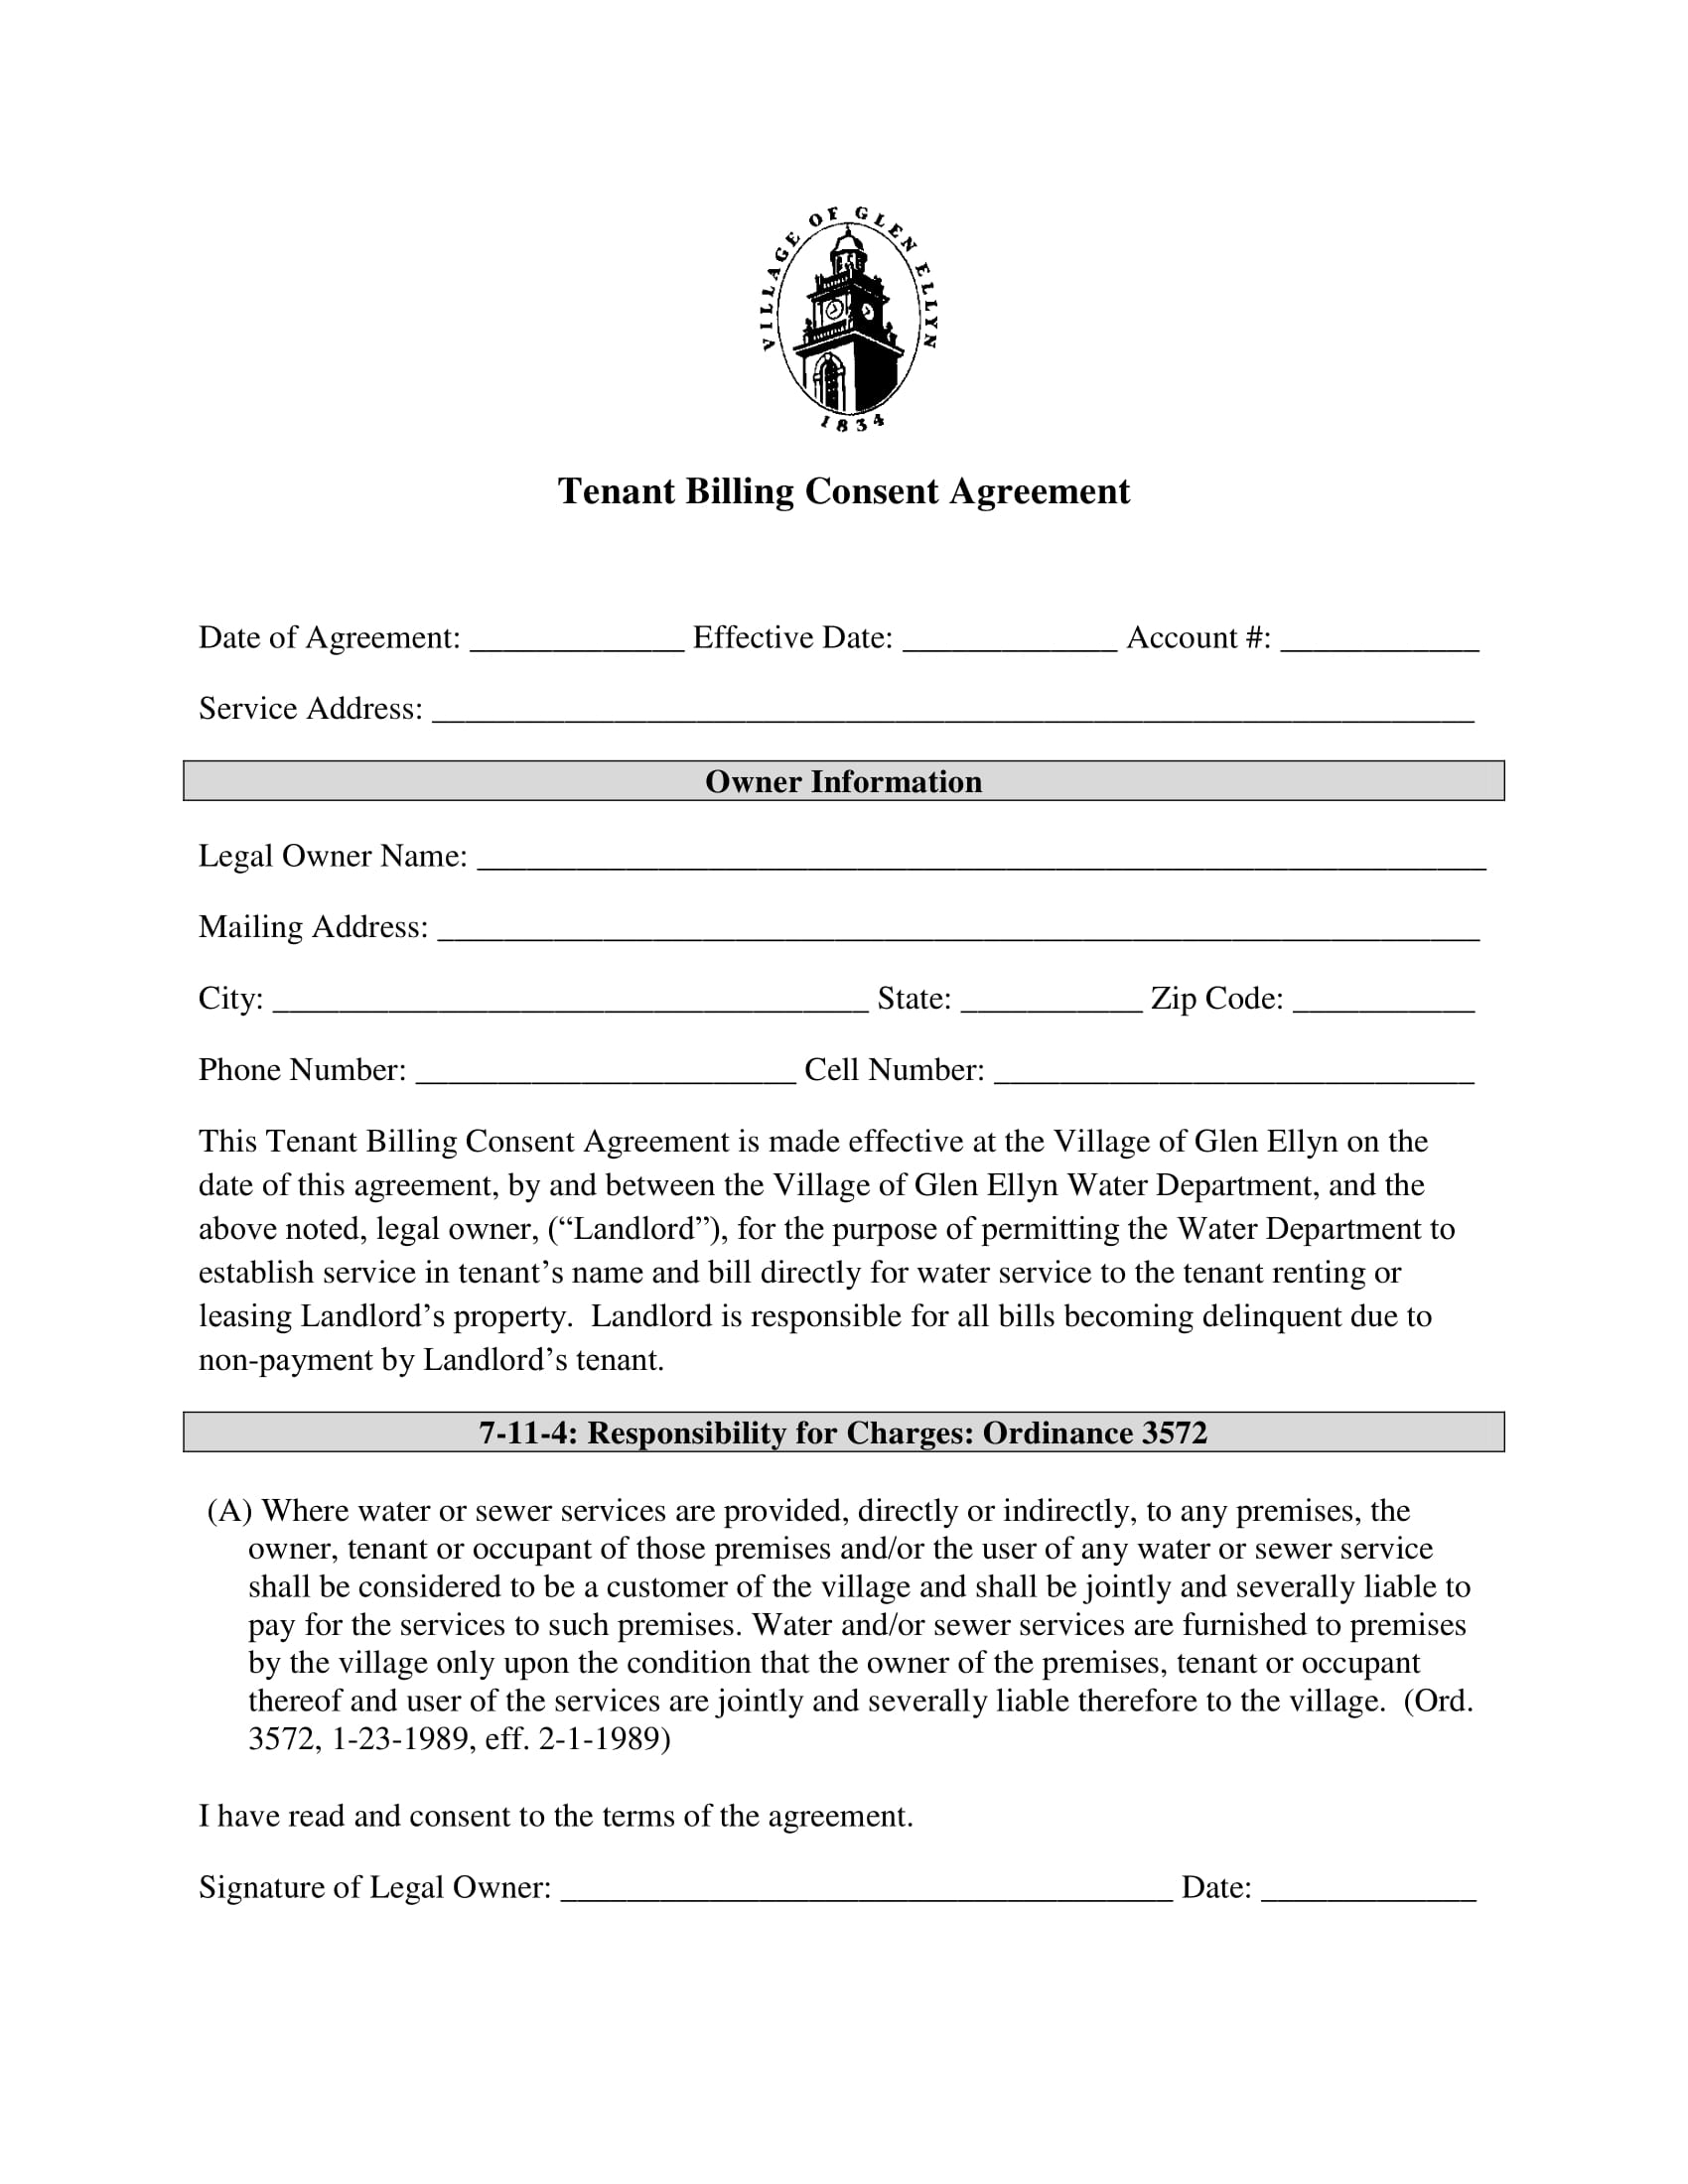 tenant billing consent agreement contract form 1